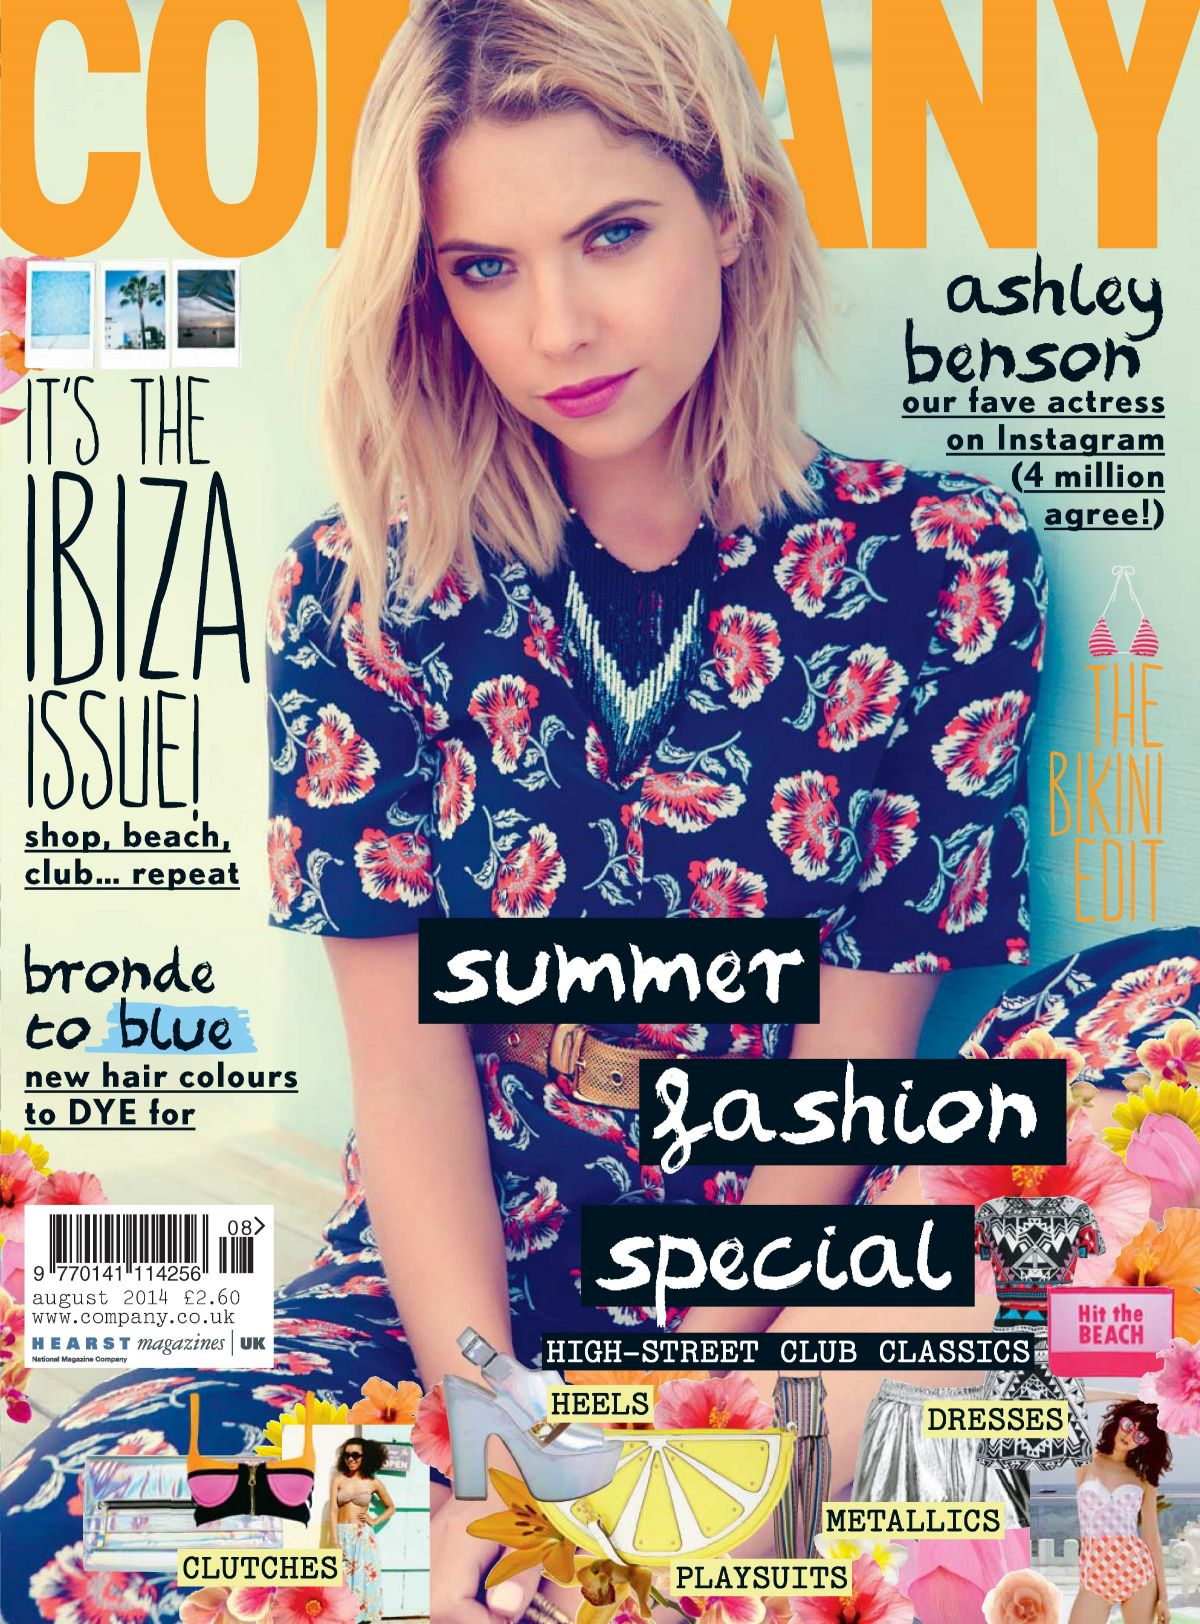 ASHLEY BENSON on the Cover of Company Magazine, August 2014 Issue